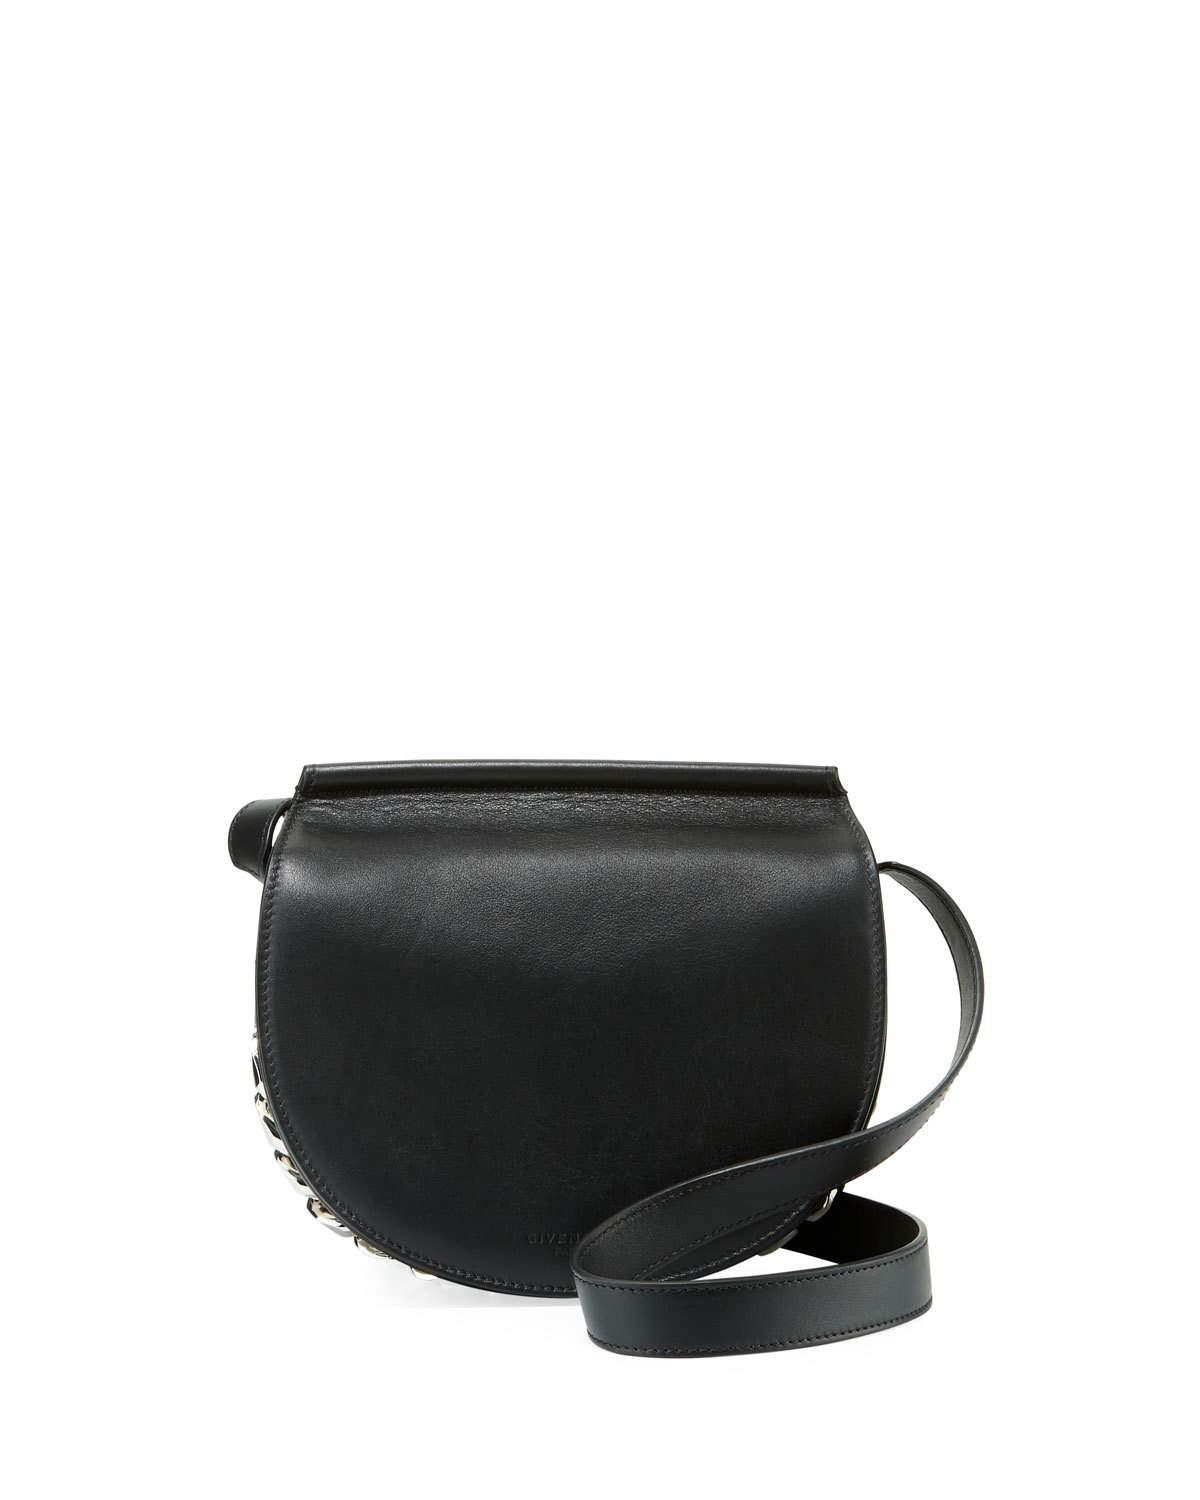 207b6d5e0b Givenchy Infinity Mini Smooth Leather Saddle Bag In Black